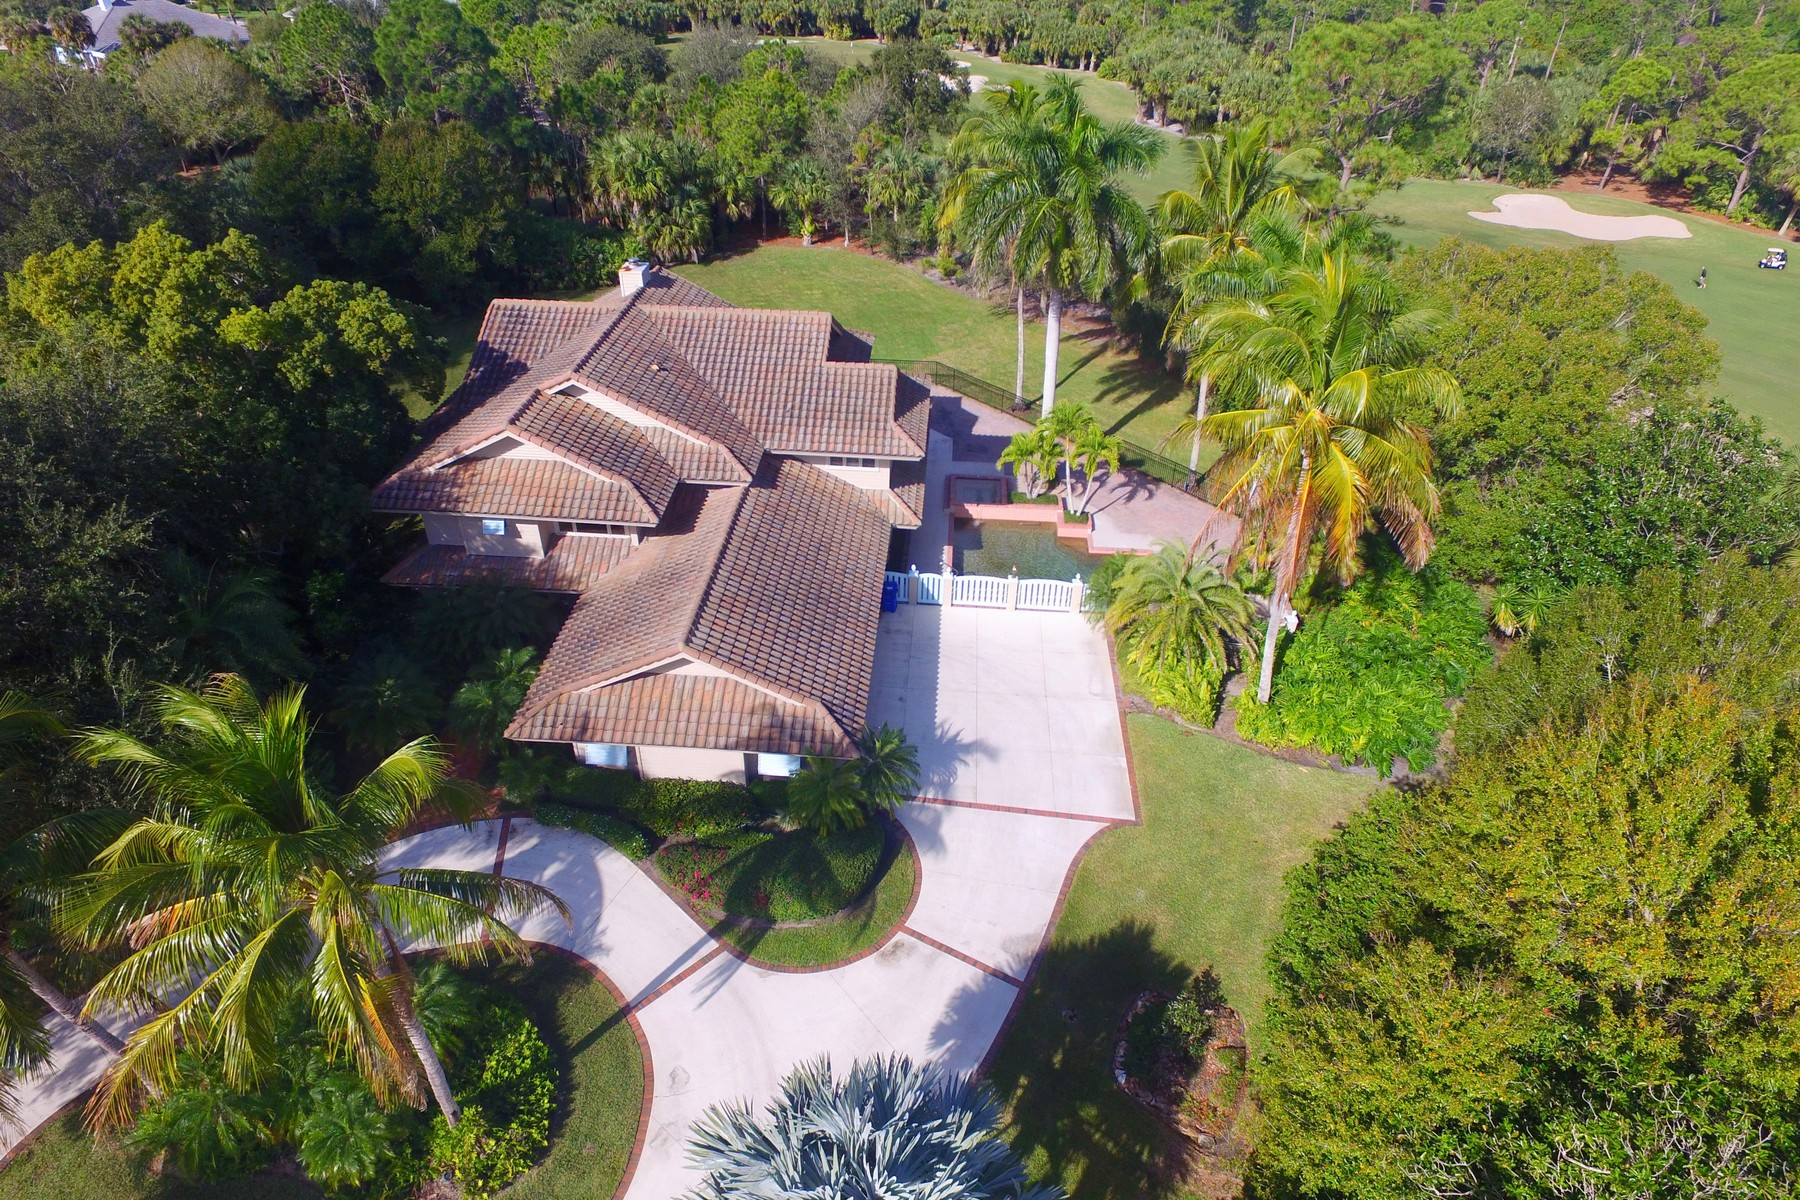 Single Family Home for Sale at Timeless and Inviting Golf Course Pool Home with Captivating Views! 5885 Turnberry Lane Vero Beach, Florida 32967 United States